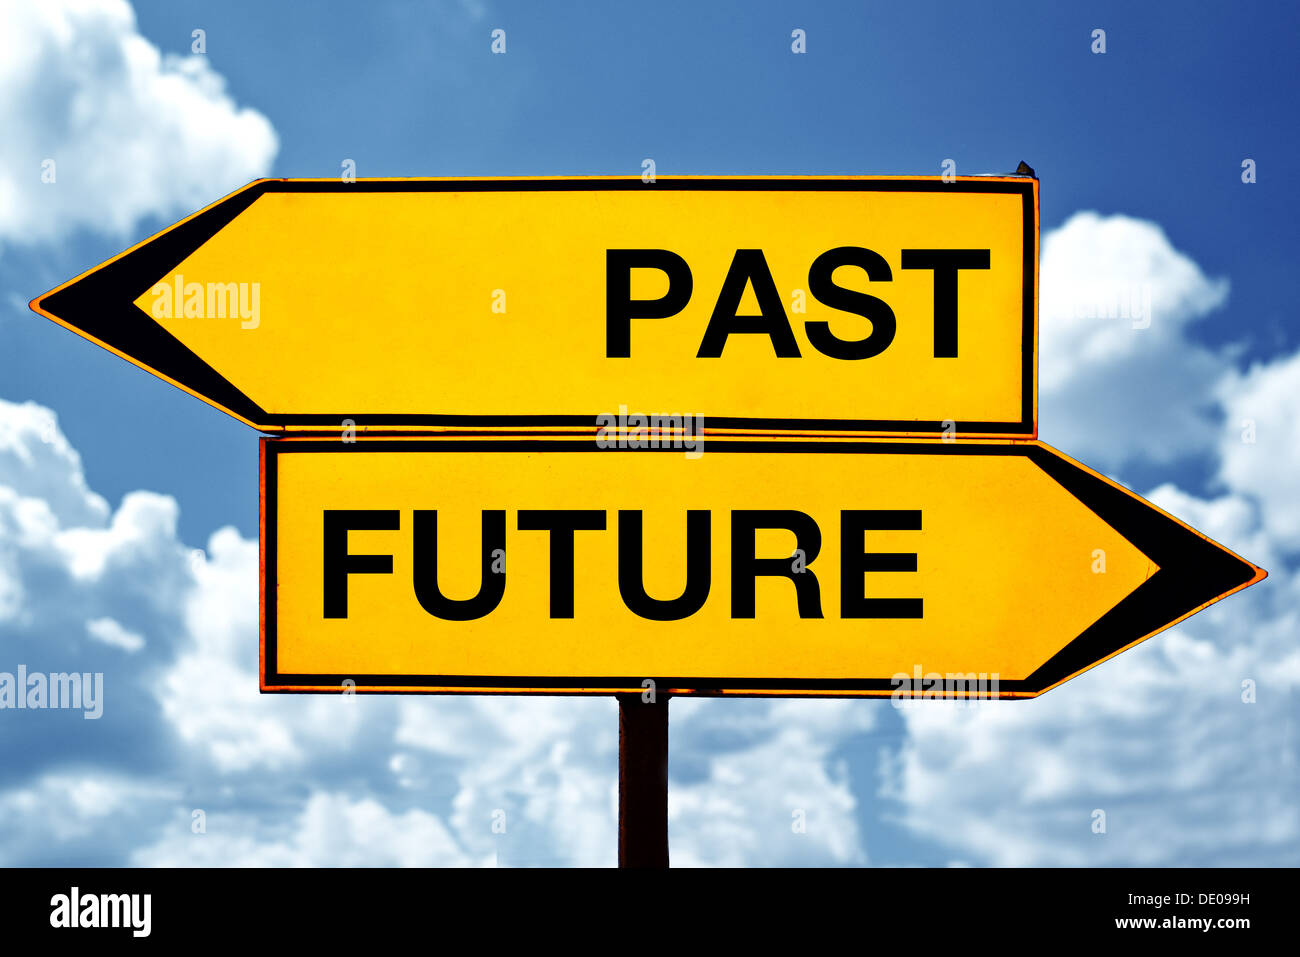 Past or future, opposite signs. Two opposite signs against blue sky background. - Stock Image